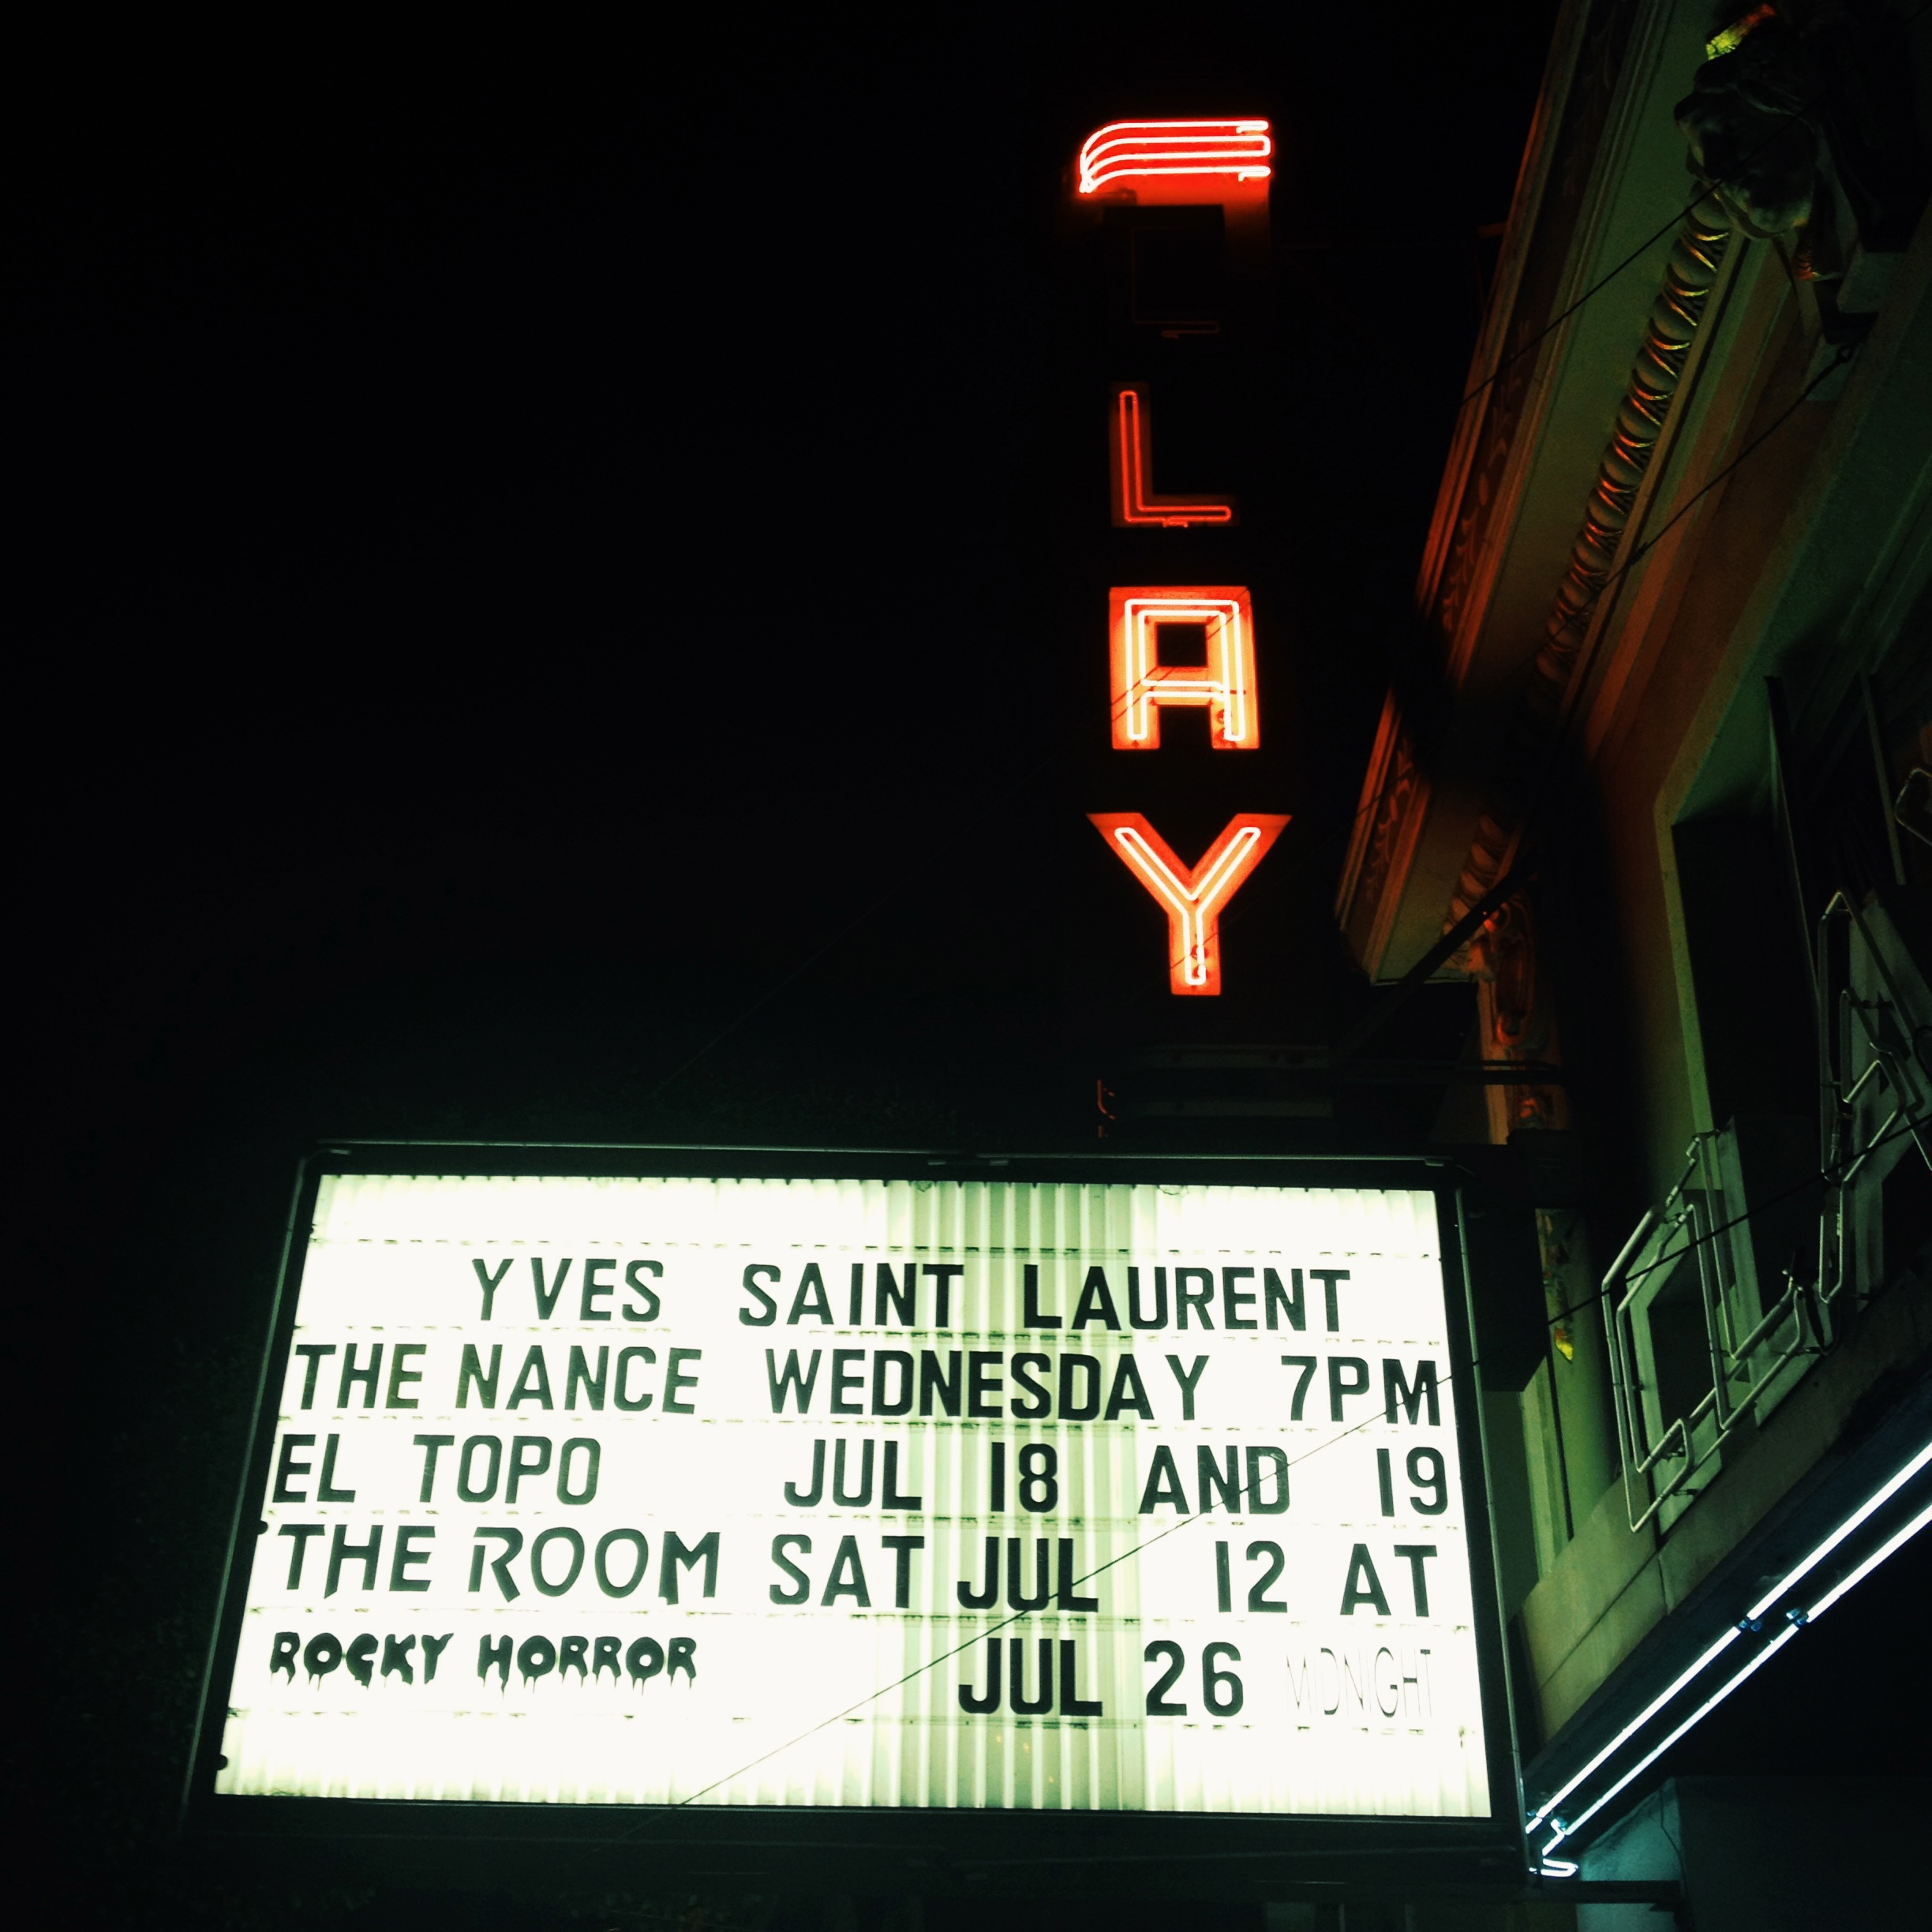 Date night at Clay Theater to see the YSL movie!